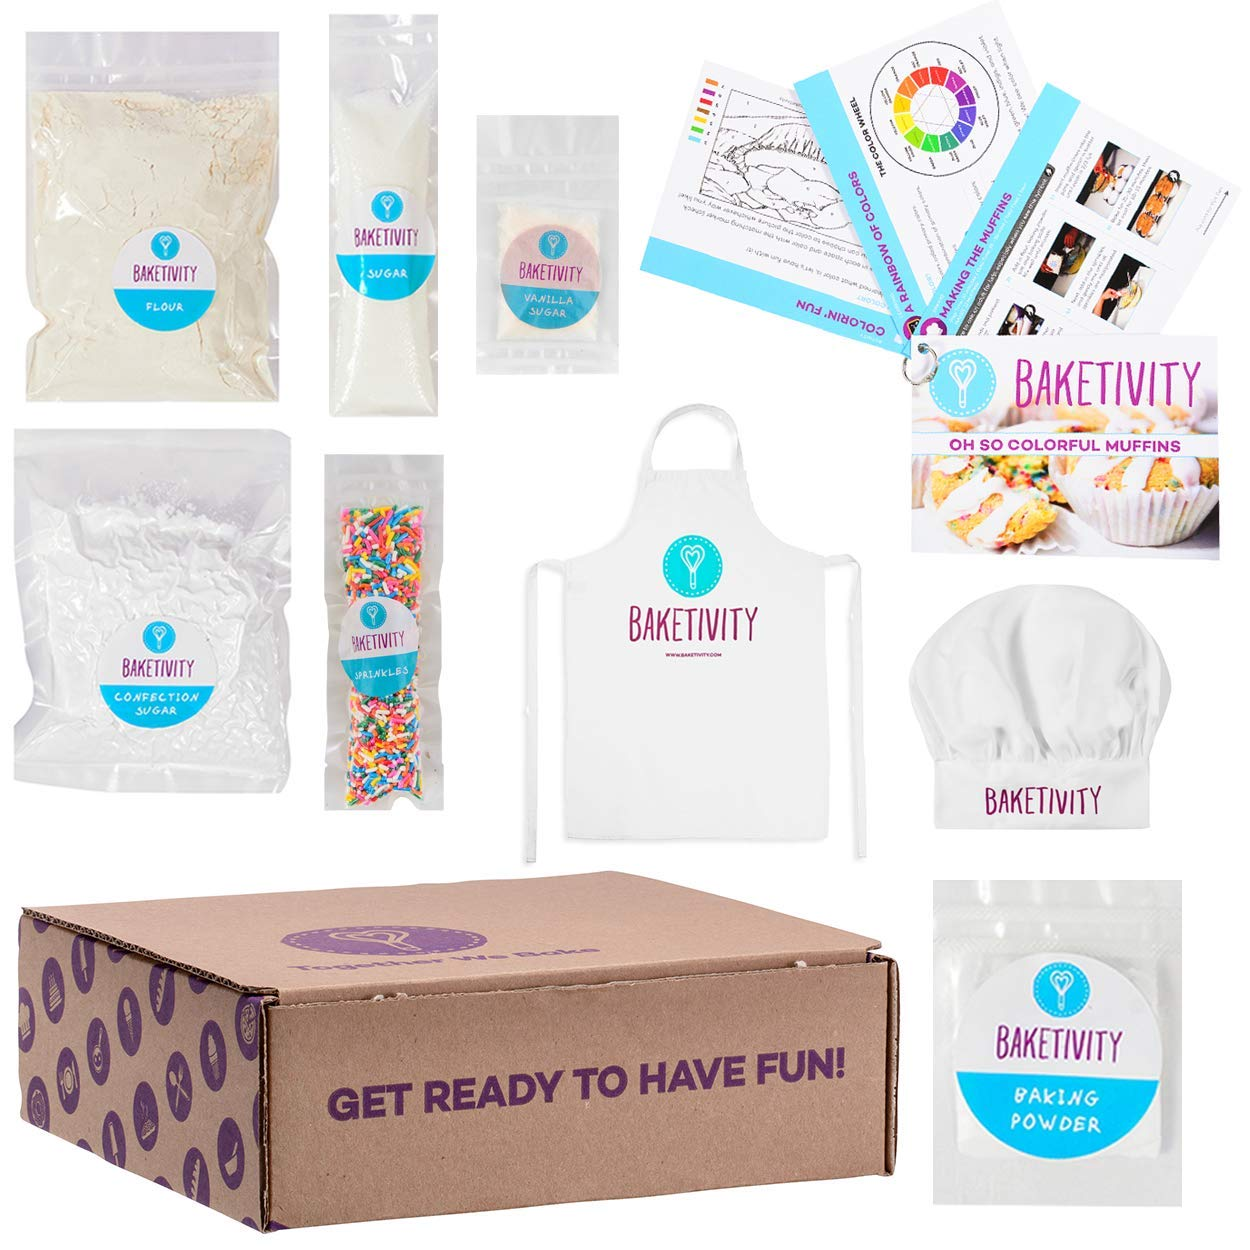 Baketivity Kids Baking Set, Meal Cooking Party Supply Kit for Teens, Real Fun Little Junior Chef Essential Kitchen Lessons, Includes Pre-Measured Ingredients Funfetti Muffins with Hat and Apron